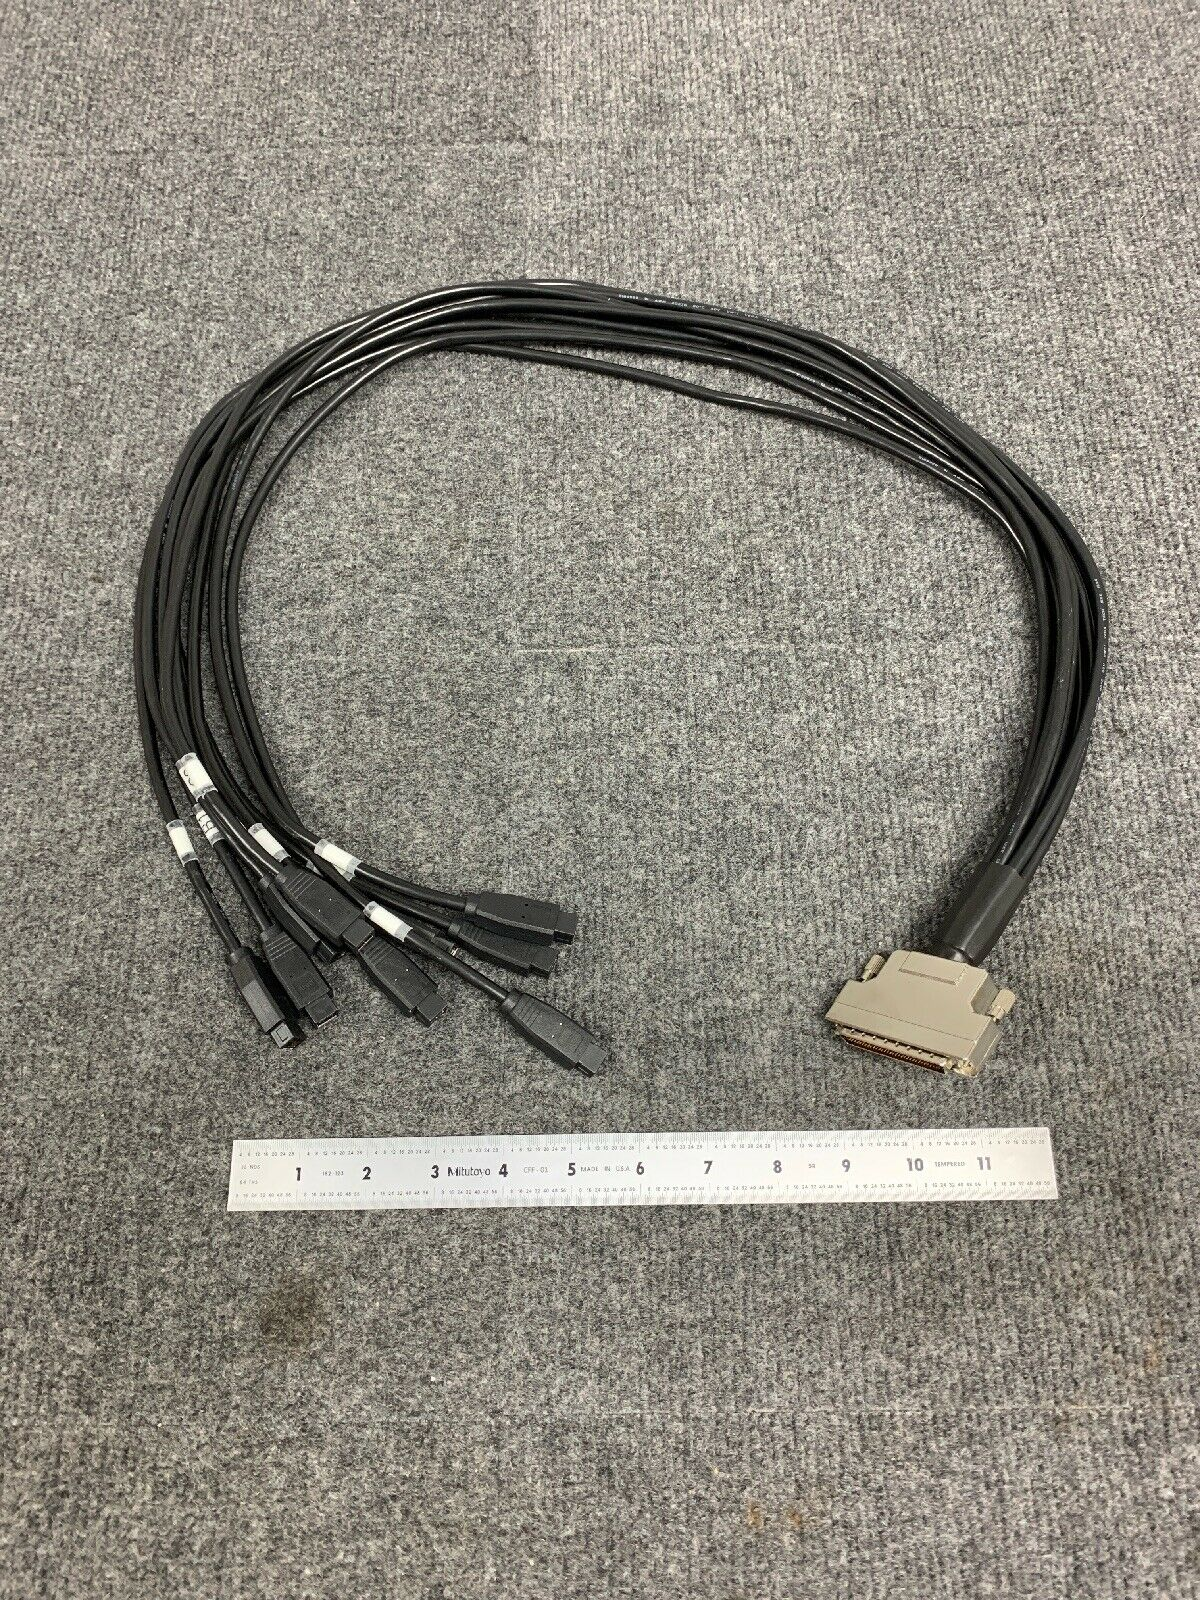 Lot of 3*** 3' 1394b FIREWIRE to Serial Port PMC3CH3FBM Connector